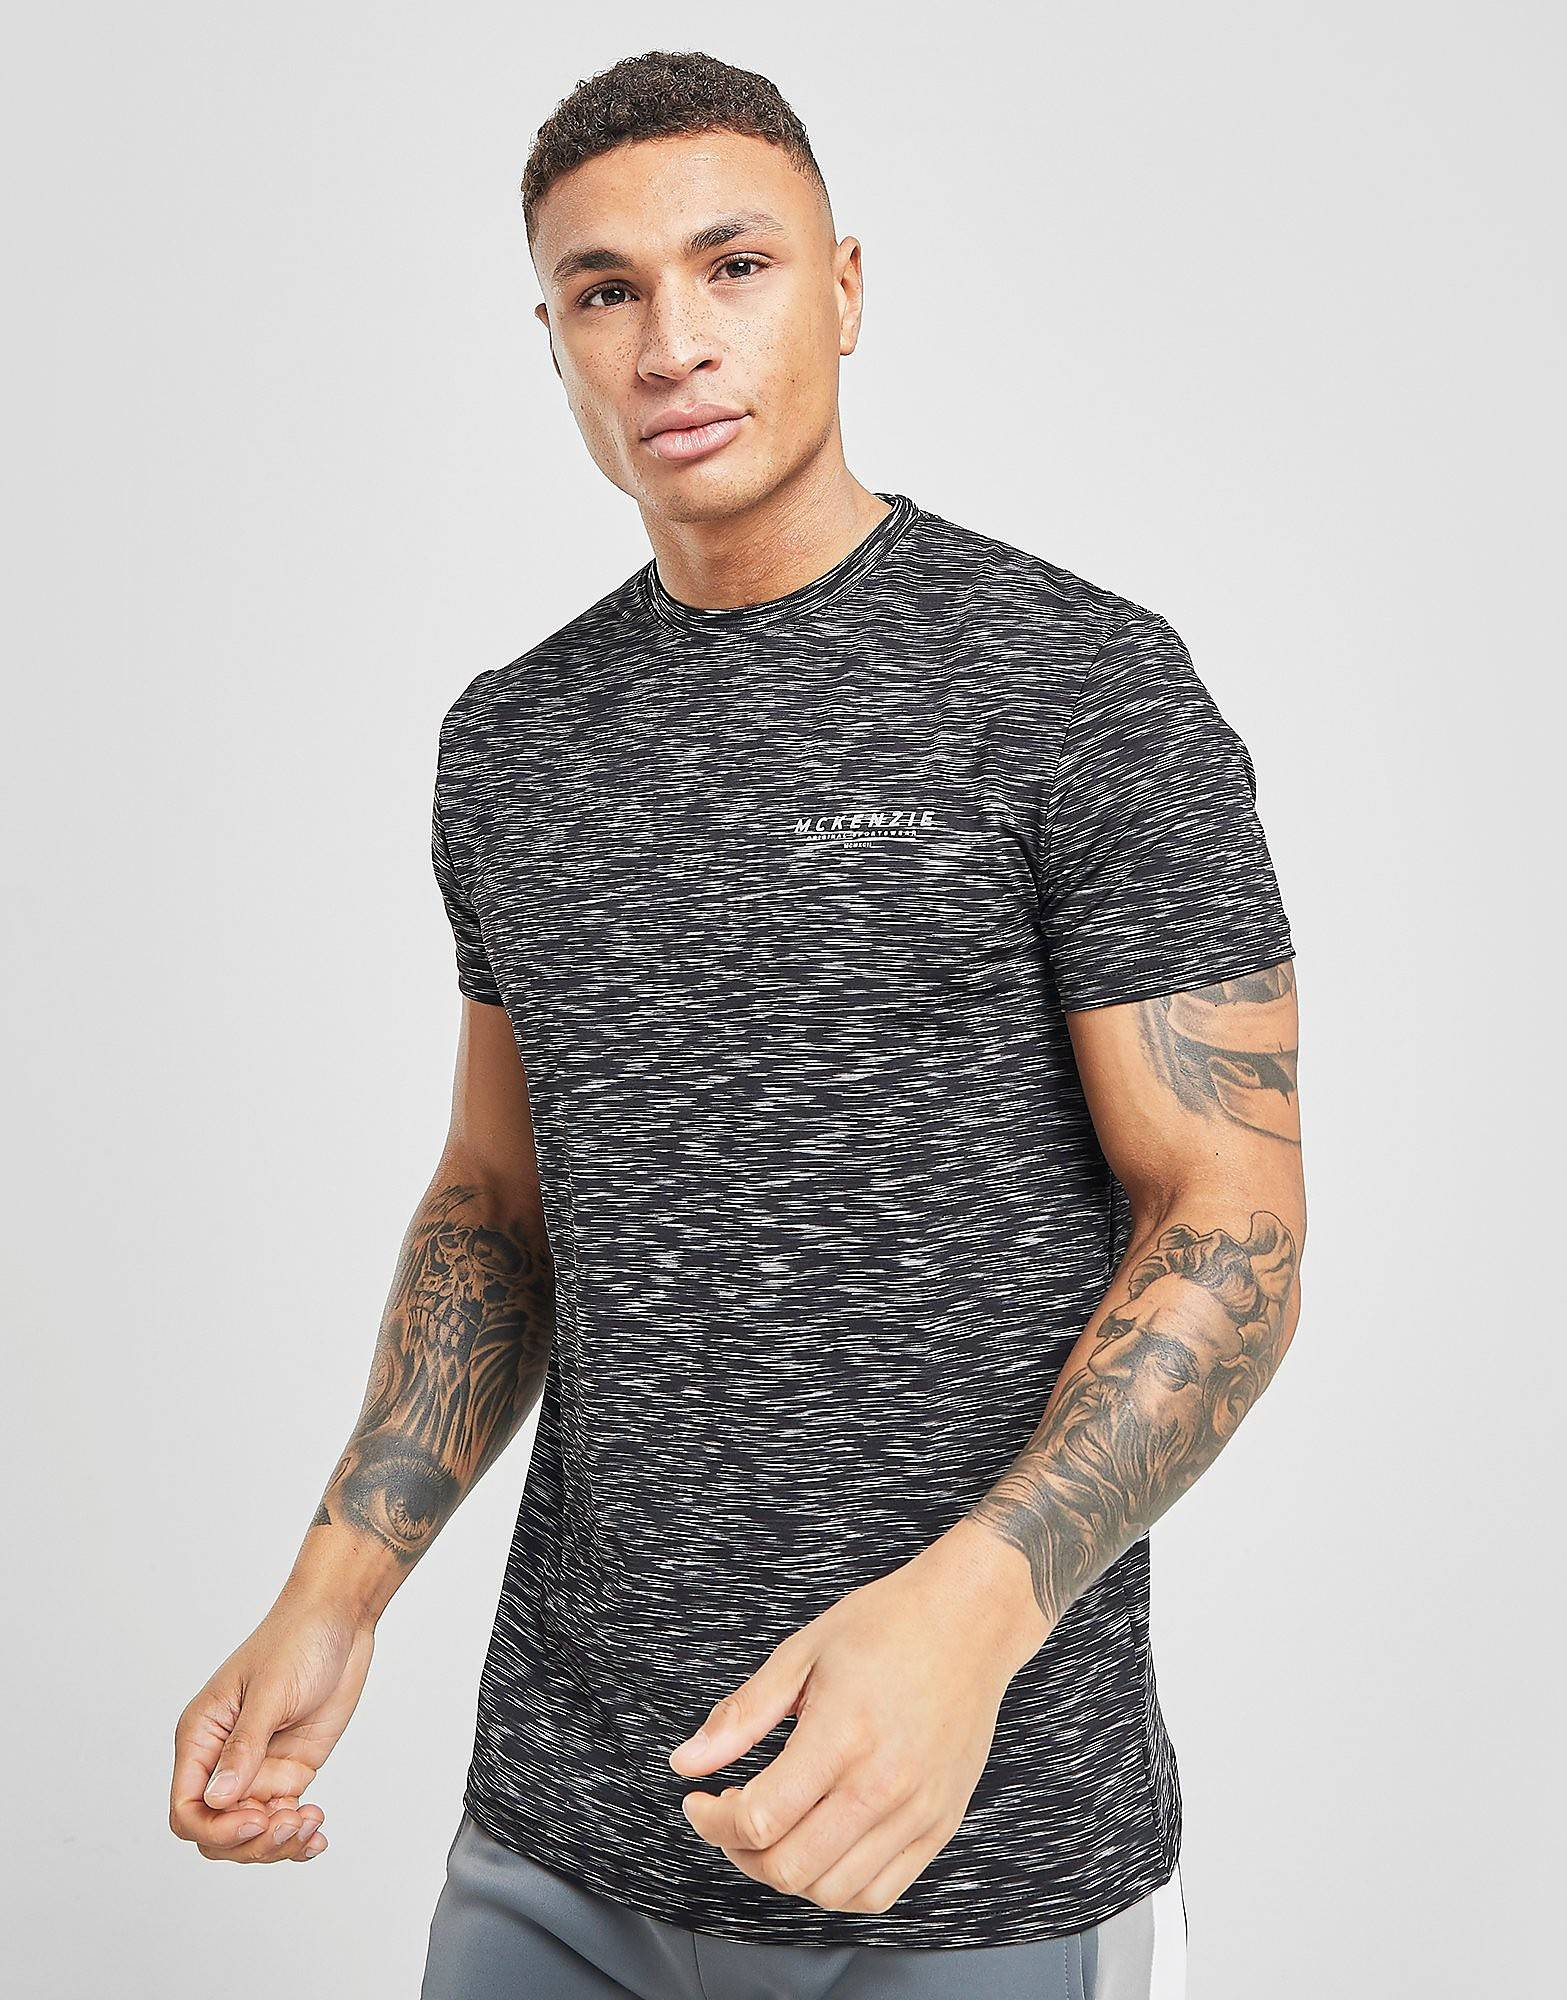 McKenzie Brannon Poly Space T-Paita Miehet - Only at JD - Mens, Musta